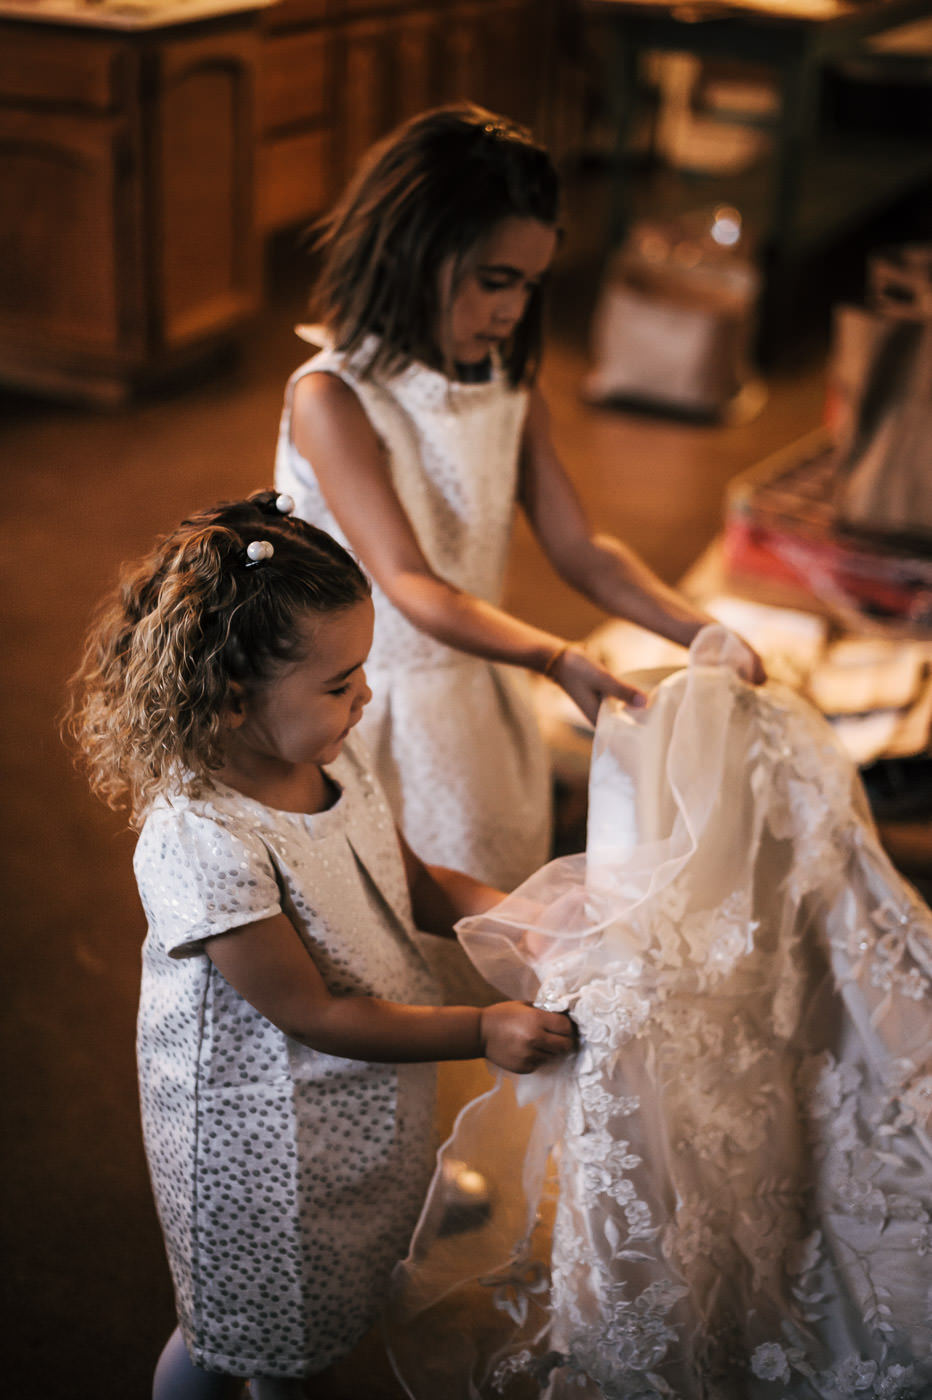 flower girls hold up the brides train while she get's ready for the wedding